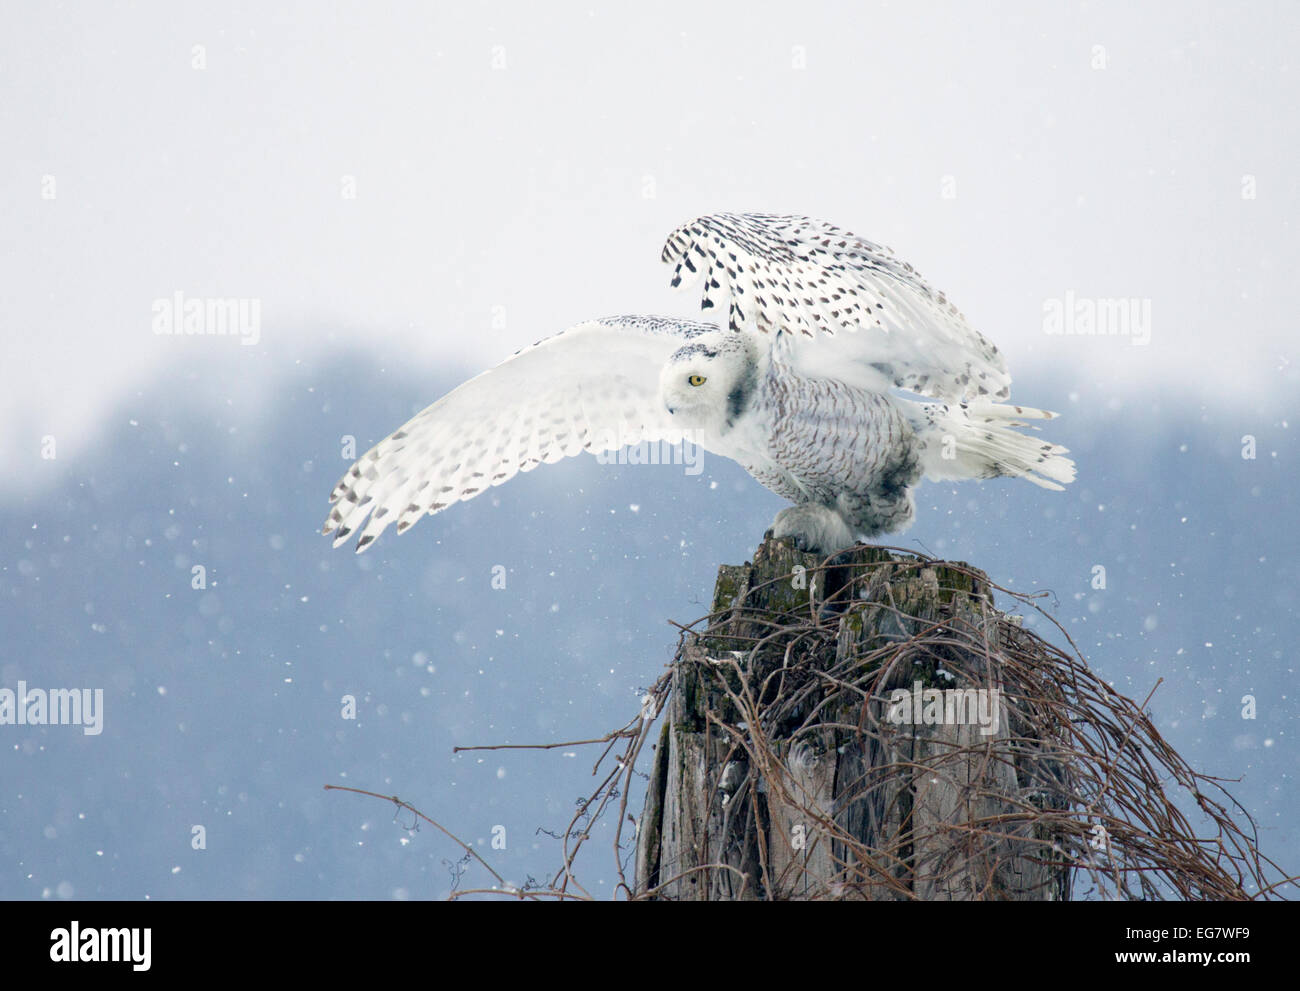 Snowy Owl Perched Snowing - Stock Image